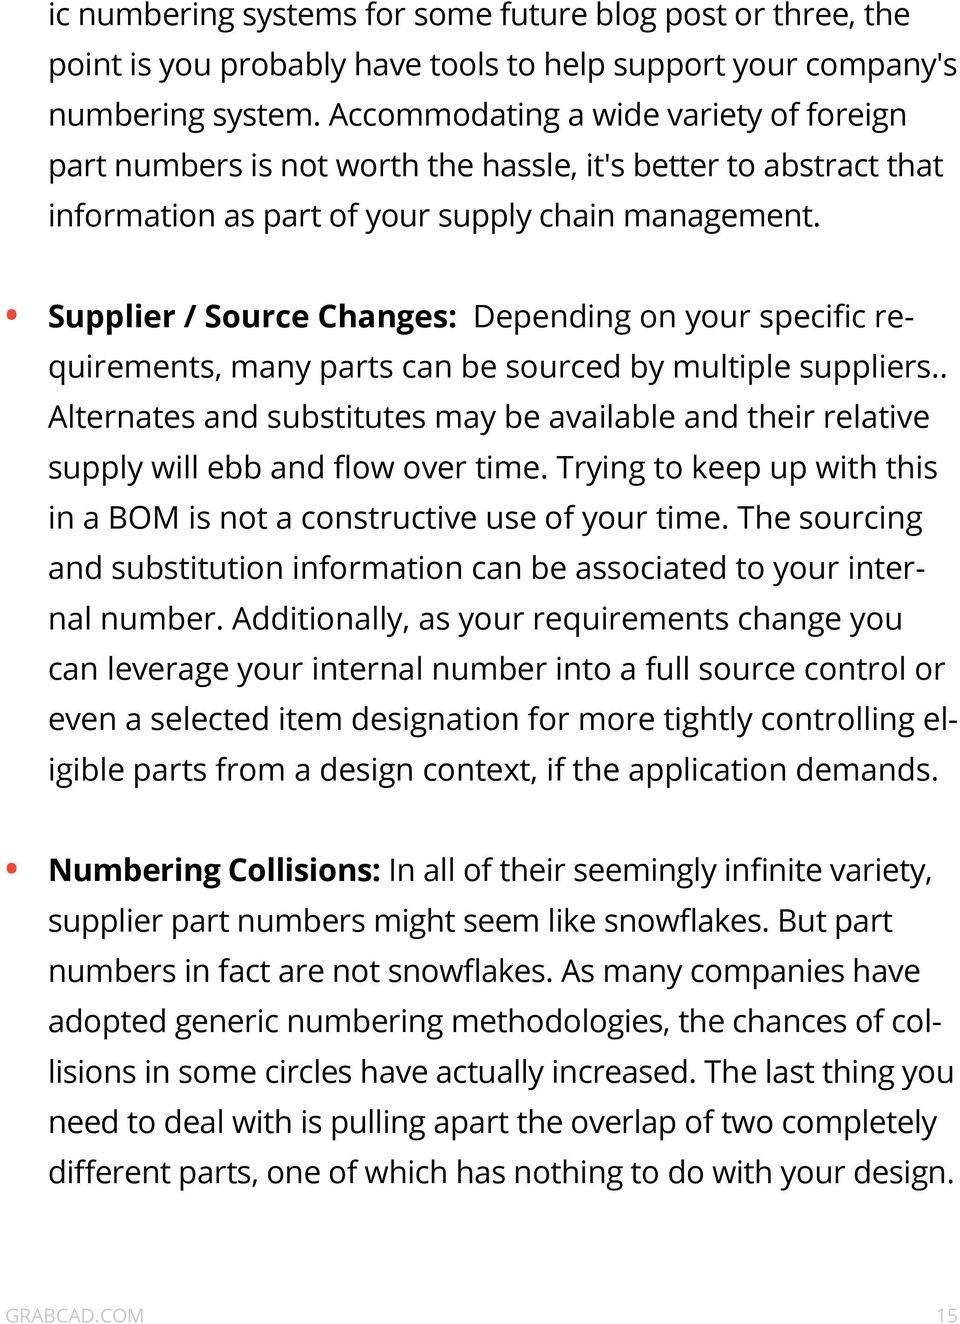 Supplier / Source Changes: Depending on your specific requirements, many parts can be sourced by multiple suppliers.